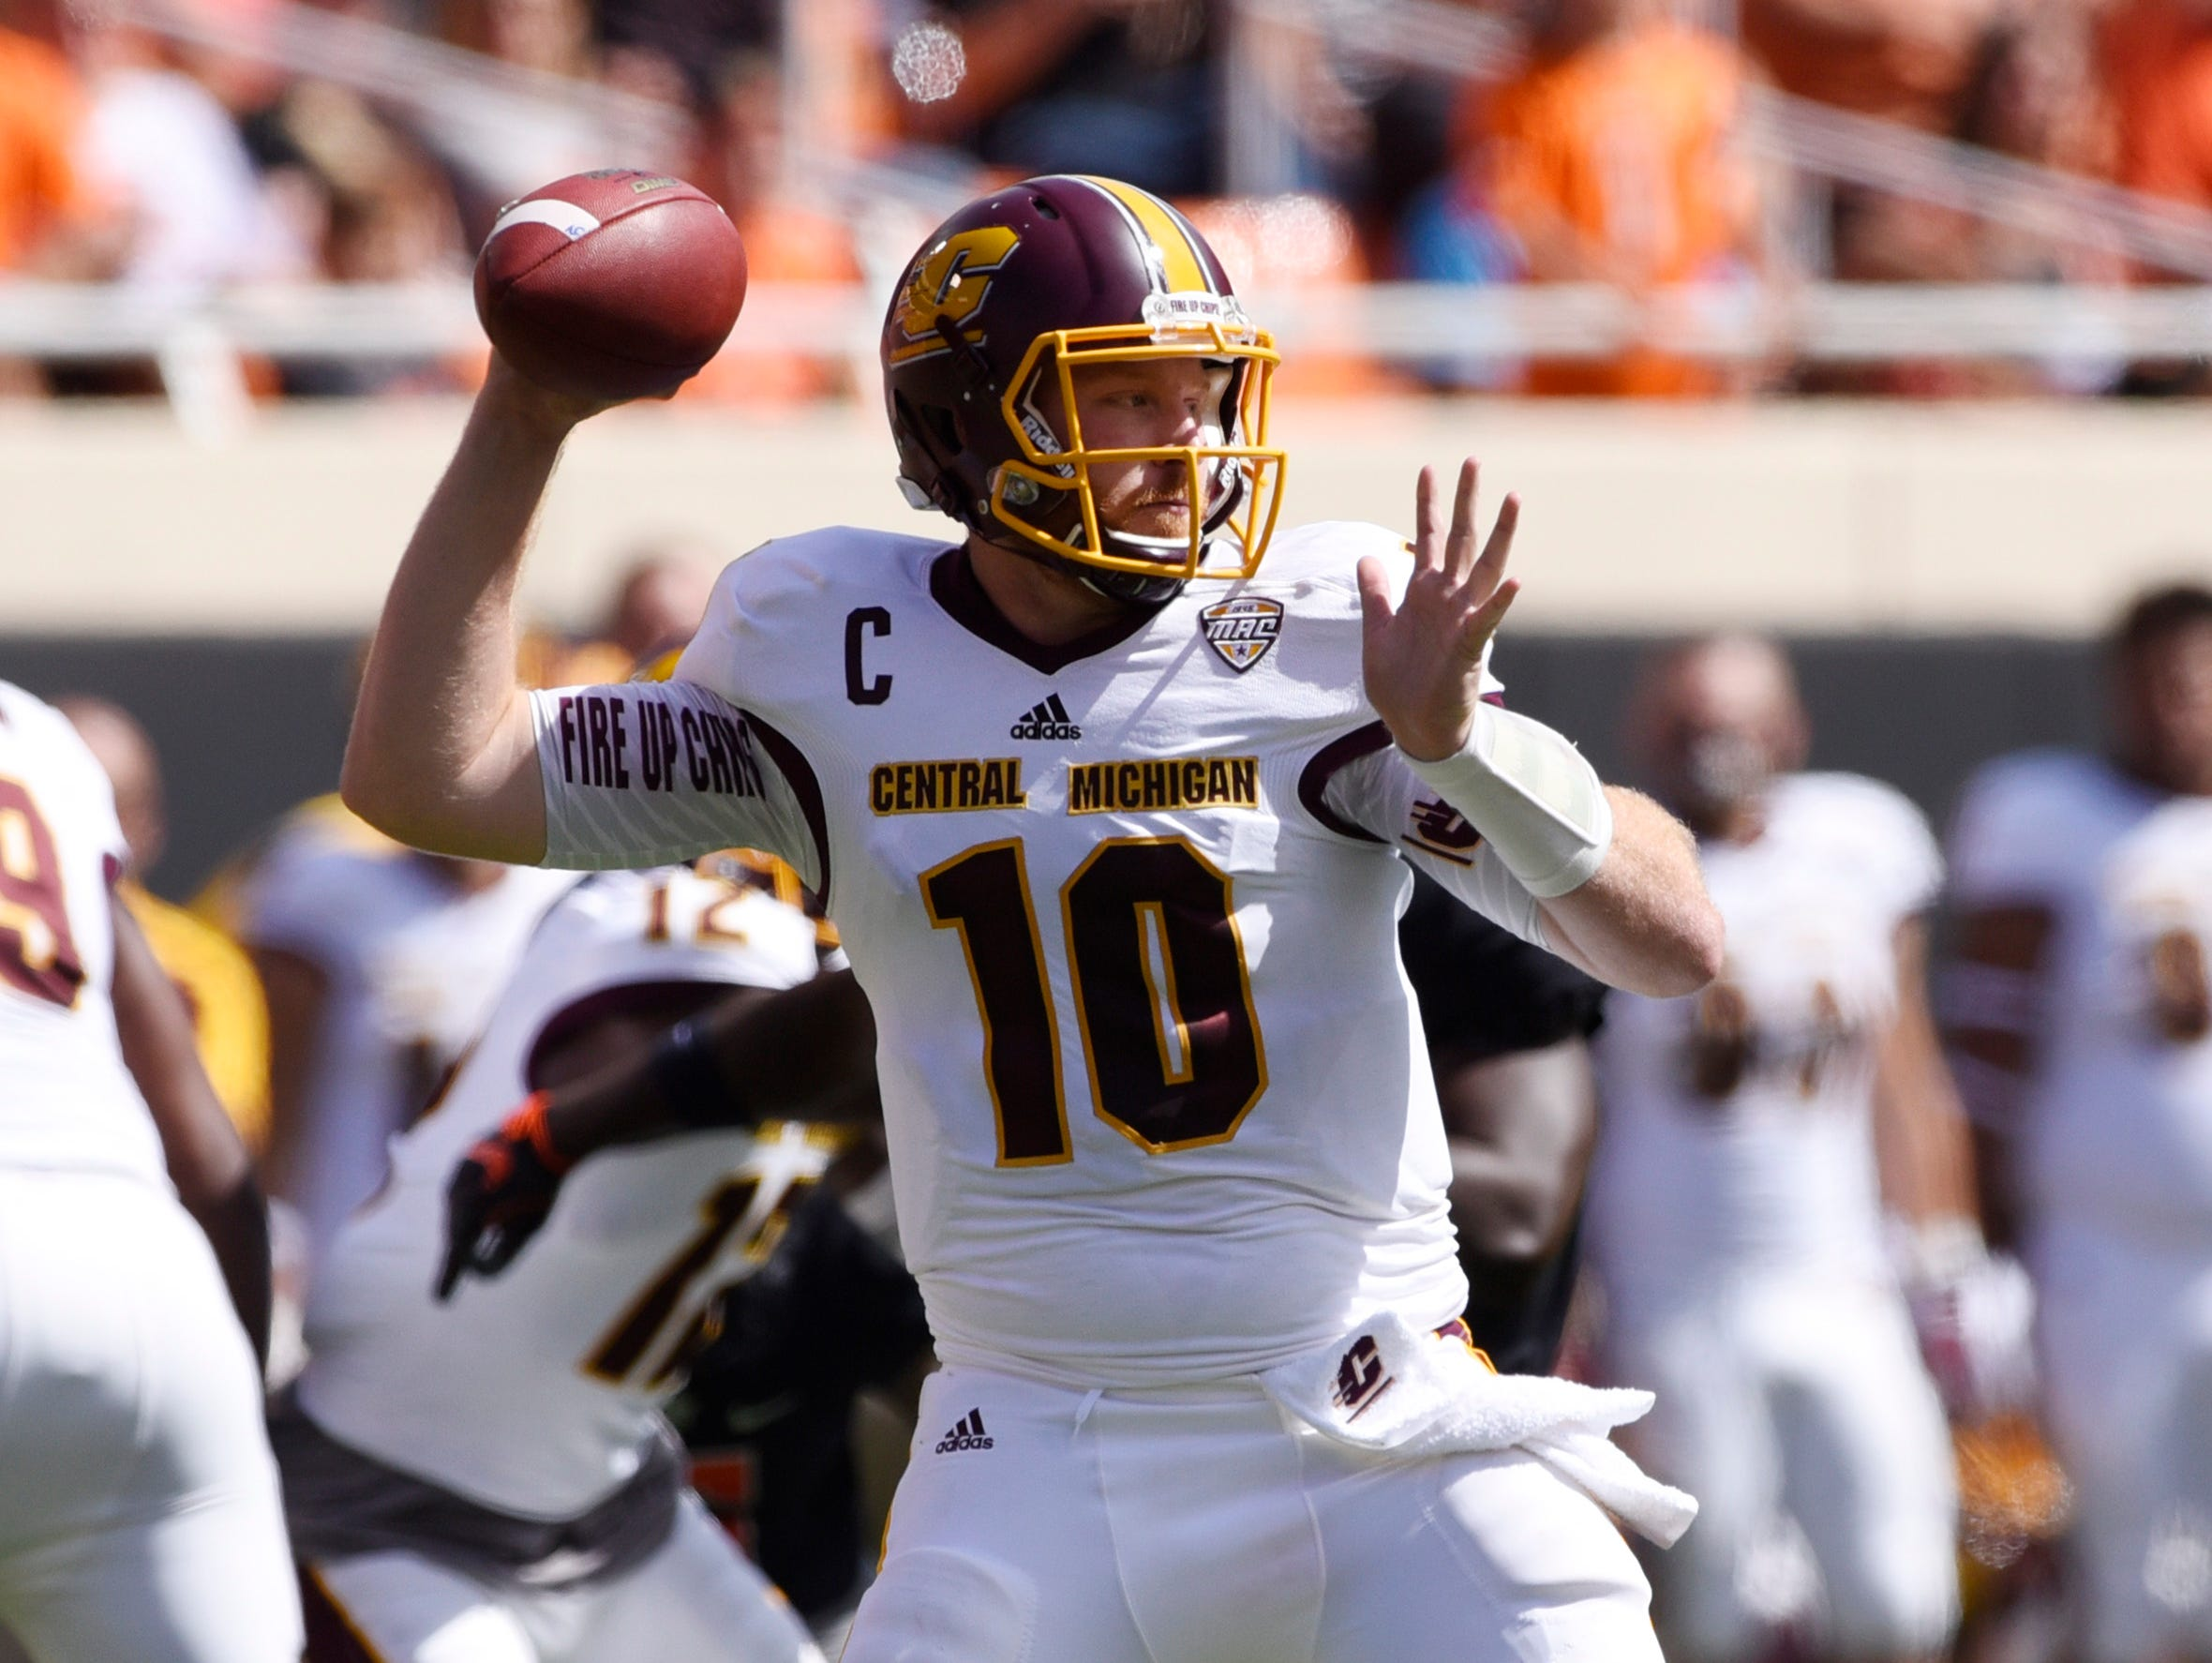 Central Michigan's Cooper Rush was named the MAC West offensive player of the week Monday after his contributions to the Chippewas' upset win over Oklahoma State.